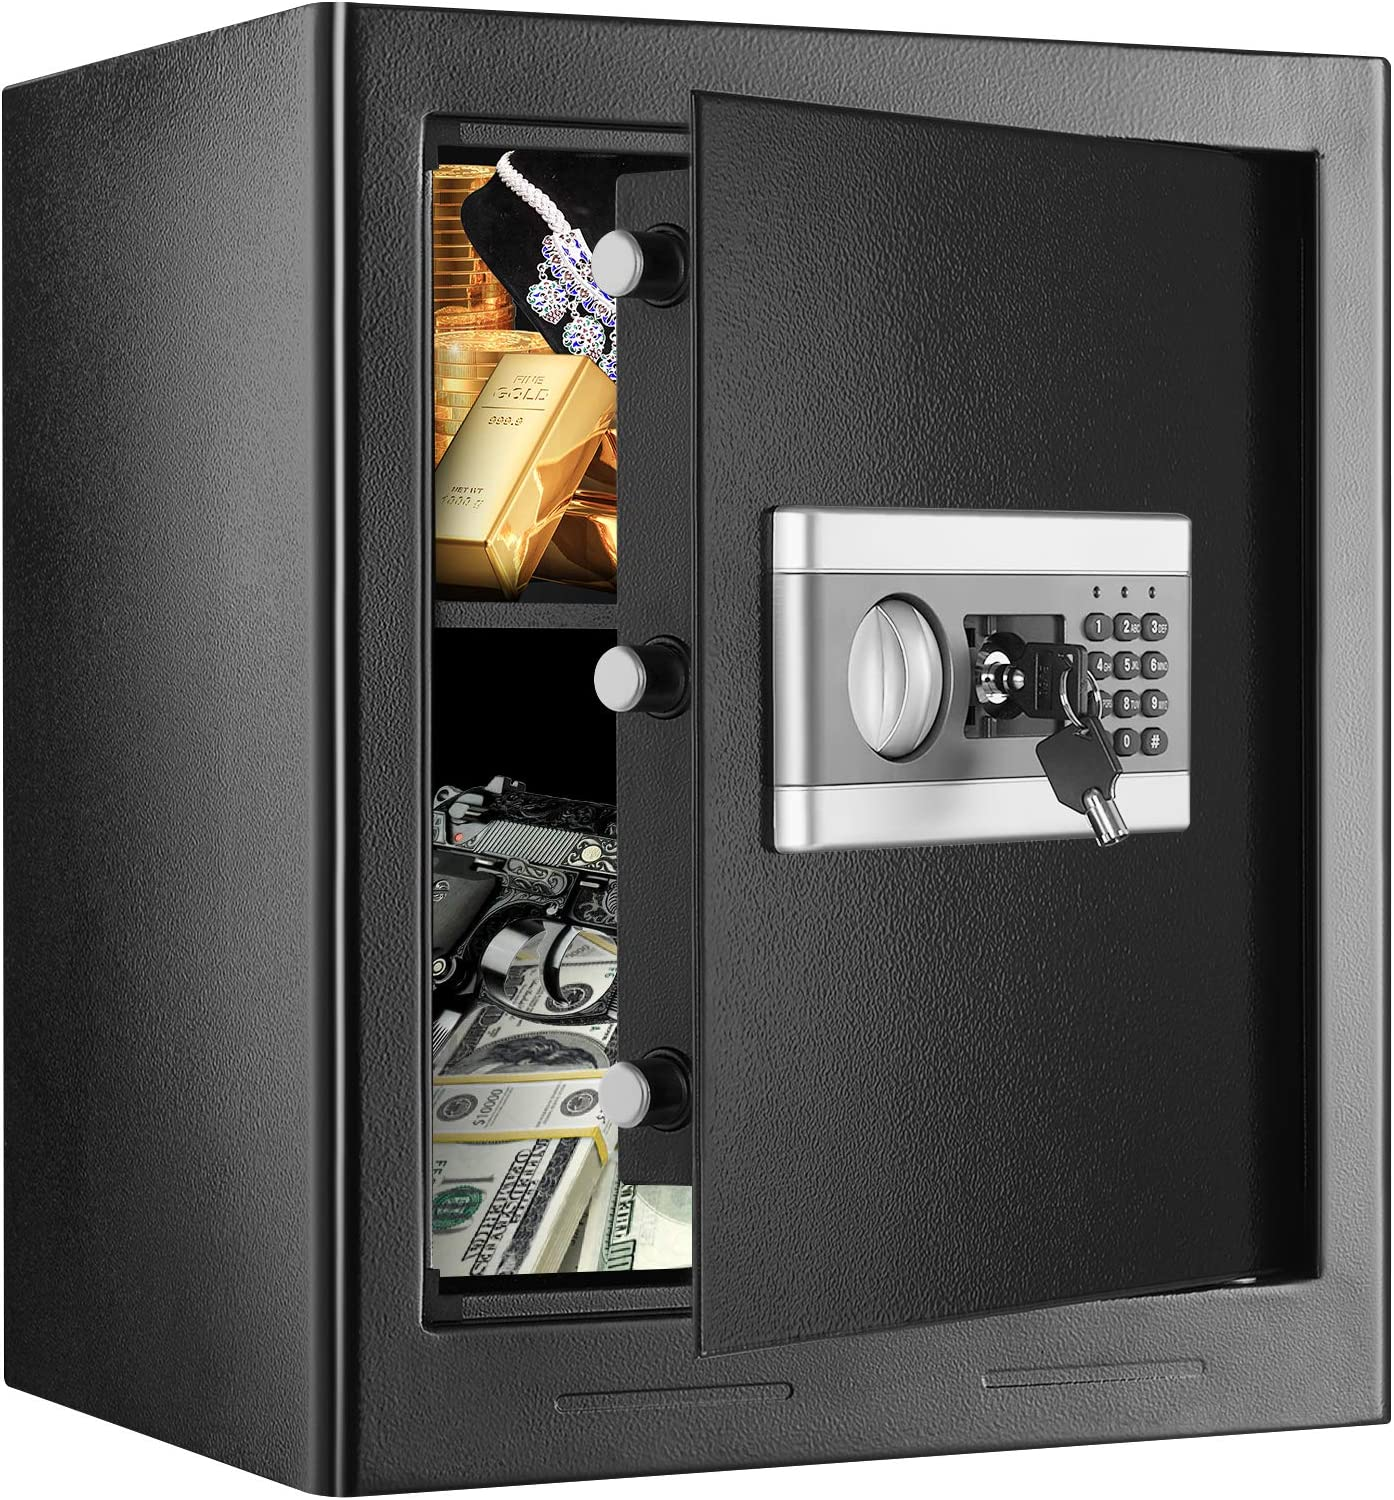 1.53Cub Security Safe Lock Box, Electronic Steel Safe with Digital Keypad, Gun Document Money Safe Box for Home Office Hotel Business with Emergency Key, Warning Alarm (1.53Cubic)